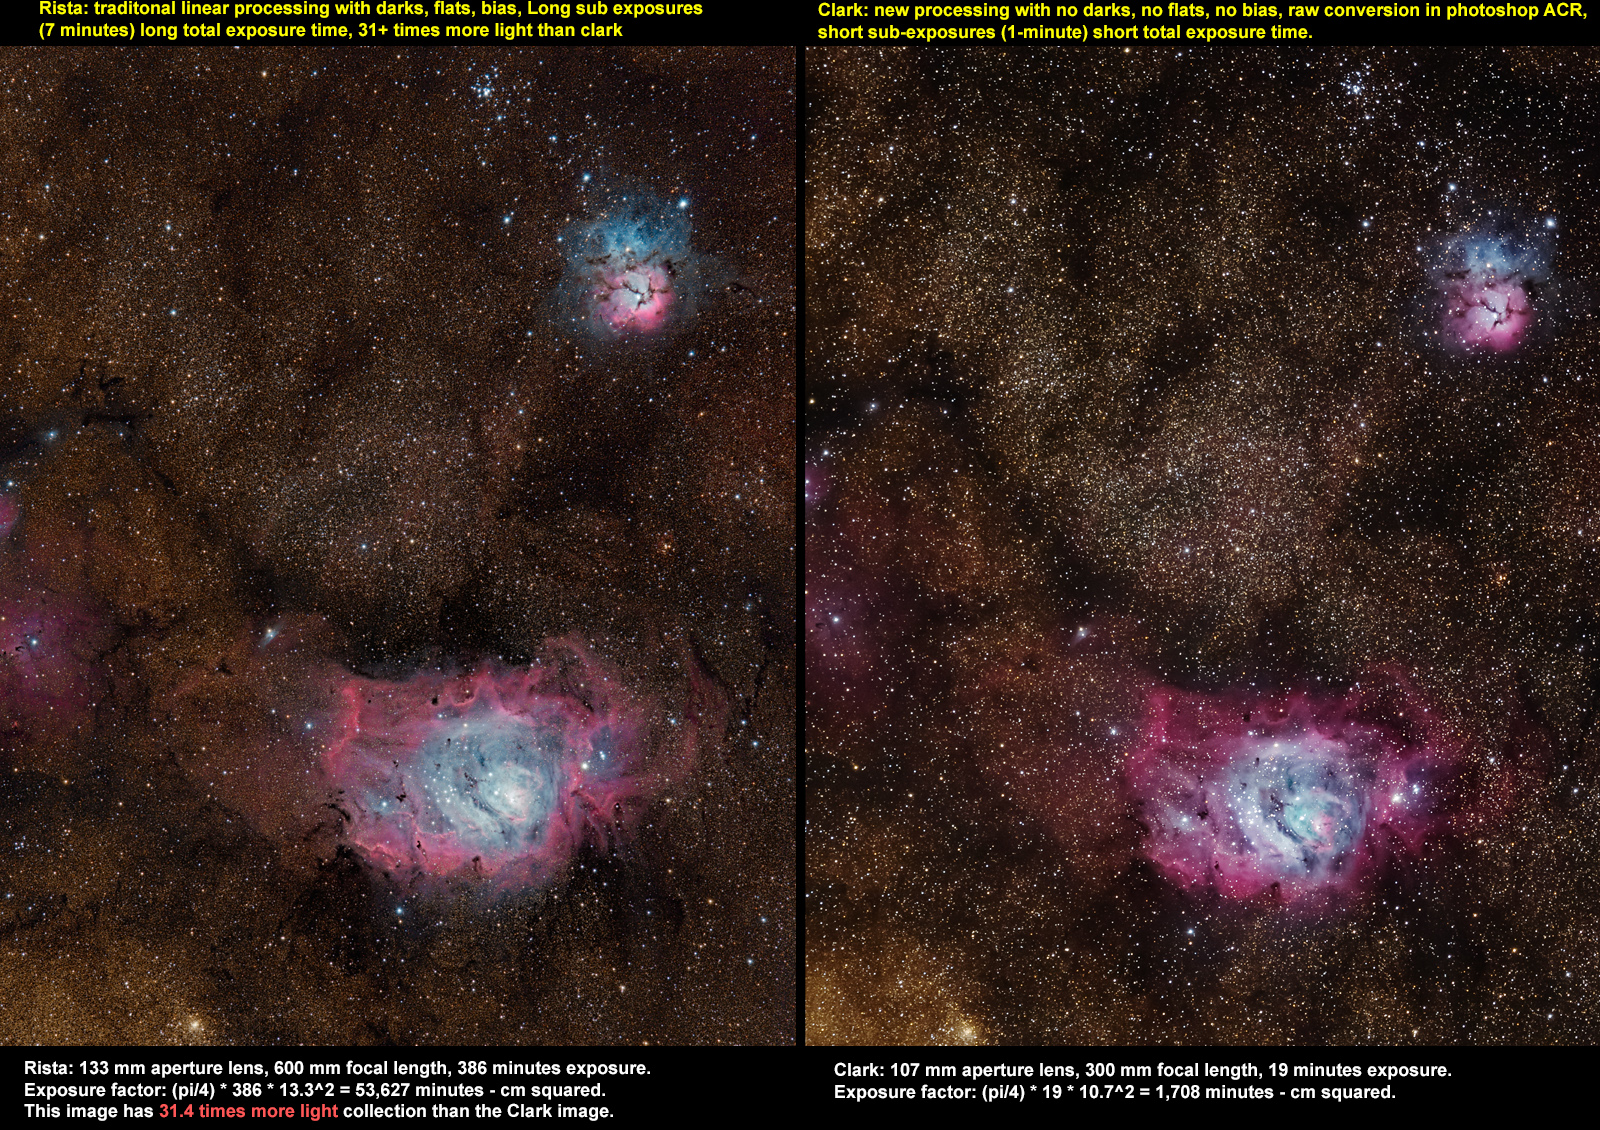 Heart & soul nebula, having some problems compared to rogers